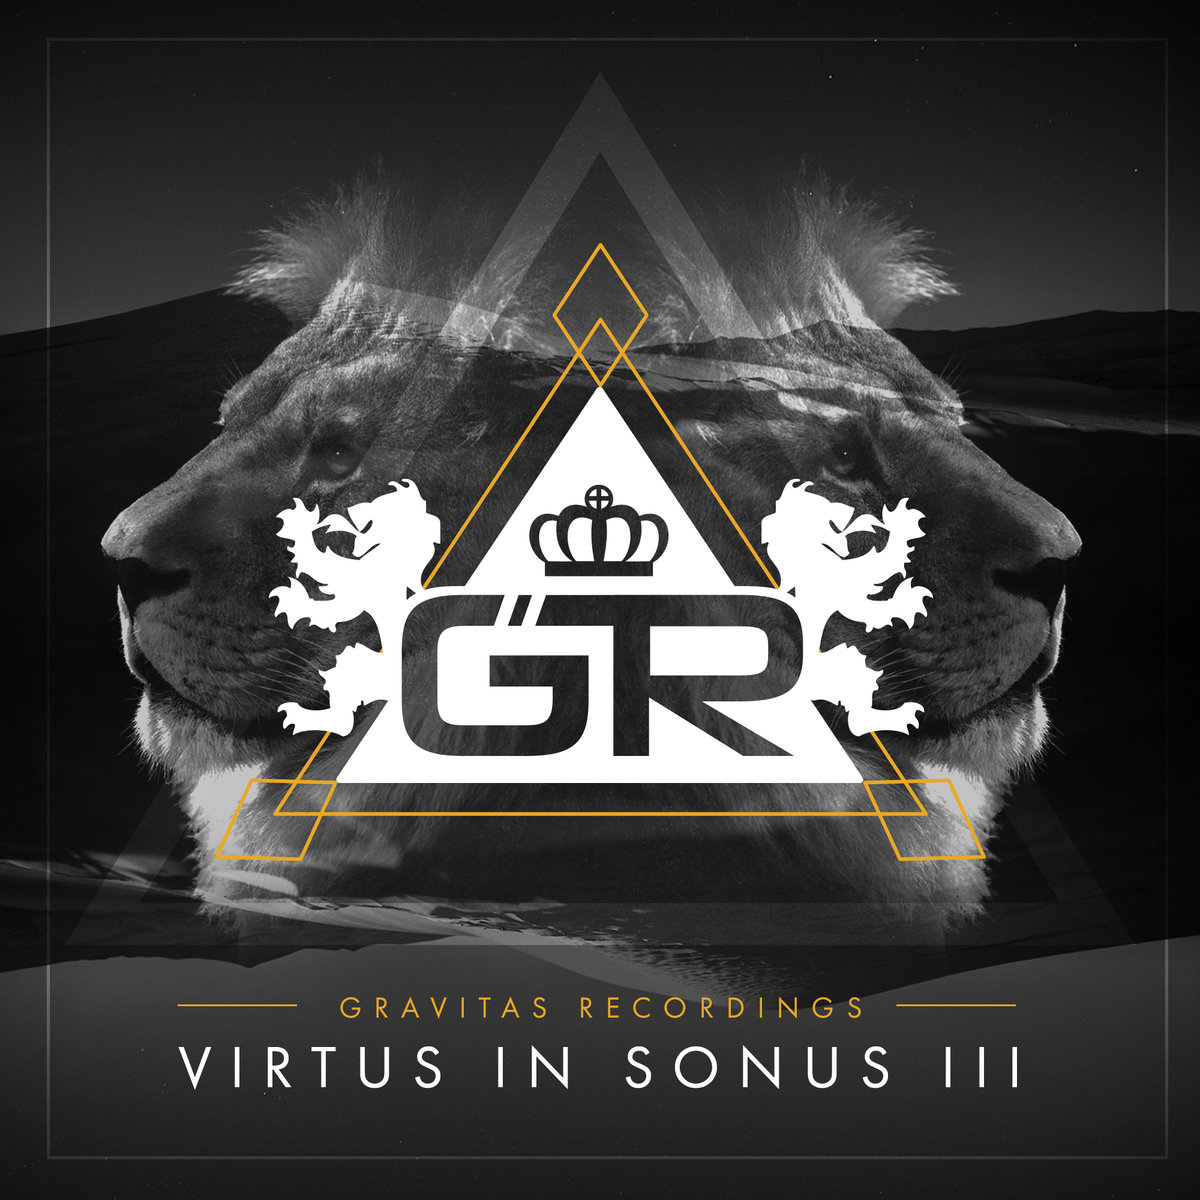 Soulular - Seasons Change @ 'Virtus In Sonus III' album (Austin)